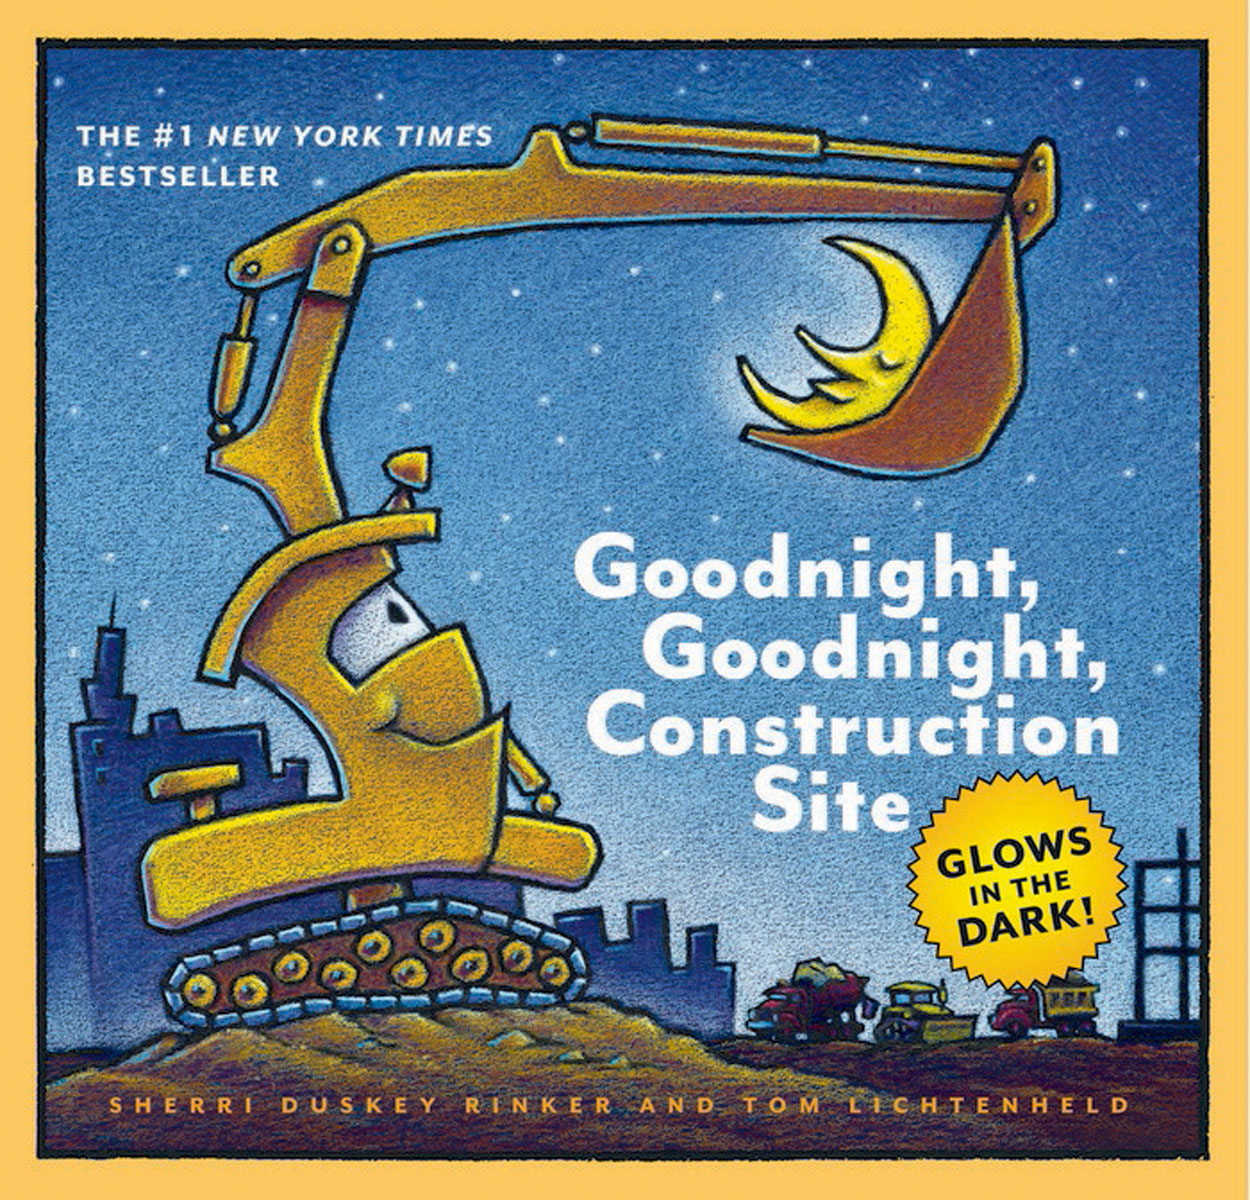 Goodnight, Goodnight, Construction Site rummy игра site by